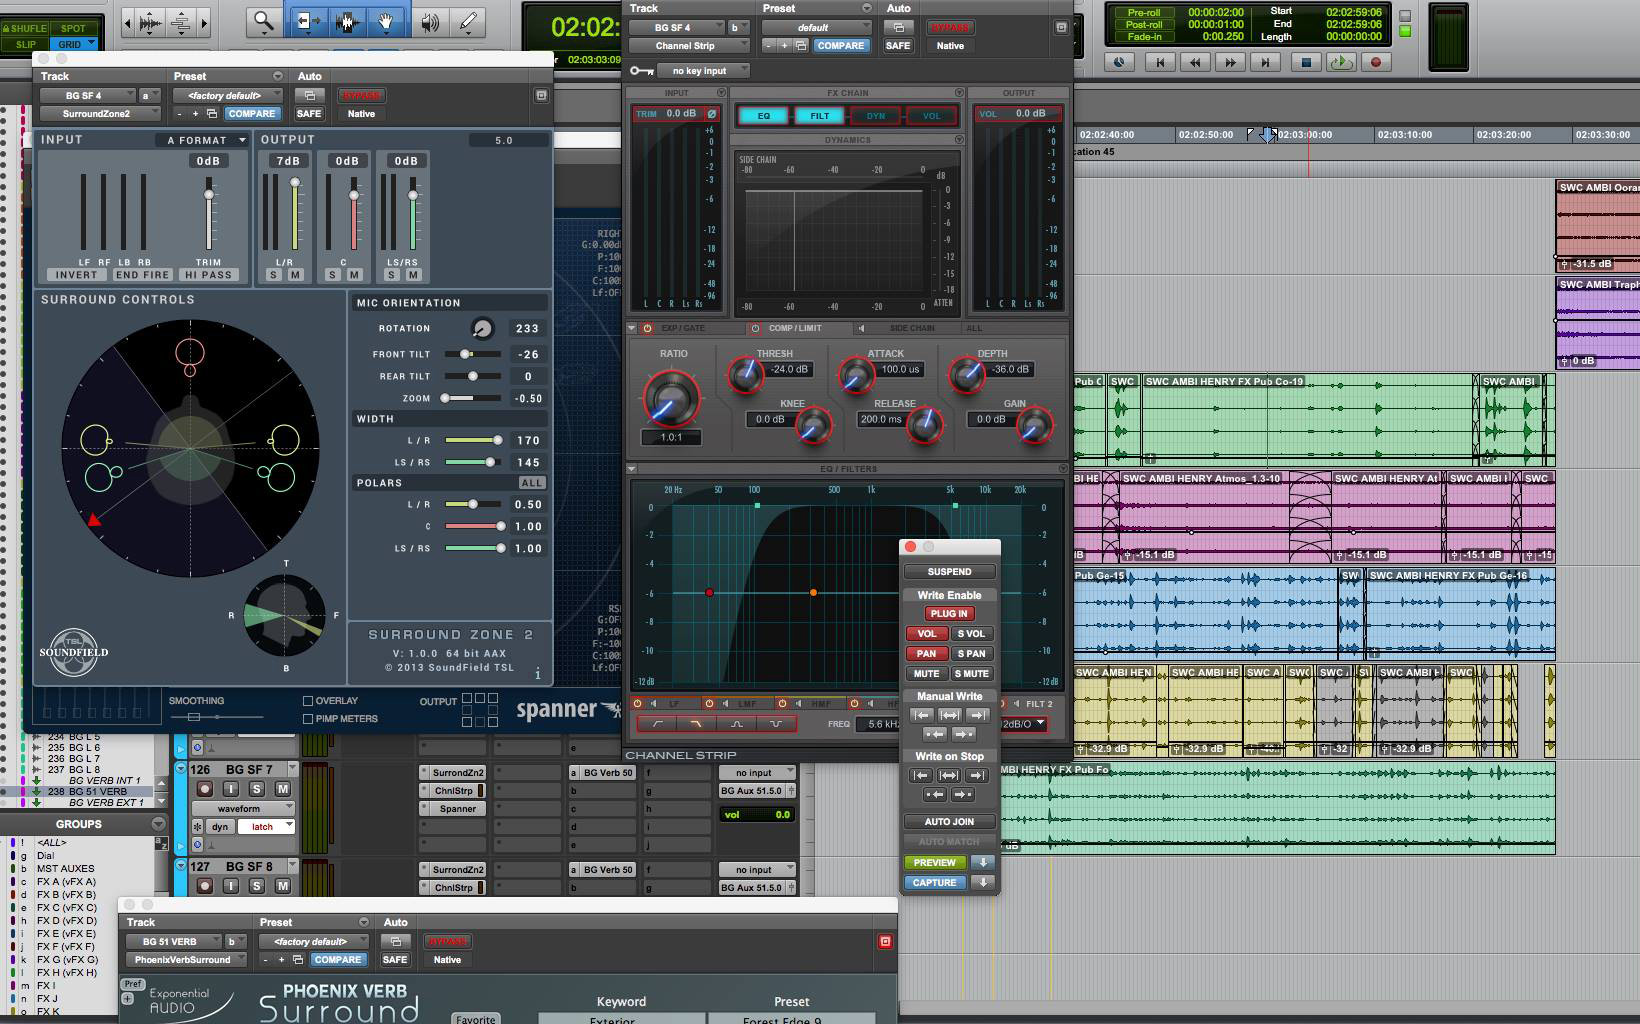 Ambisonics processing in film sound audio post production - click the image to see a larger version.